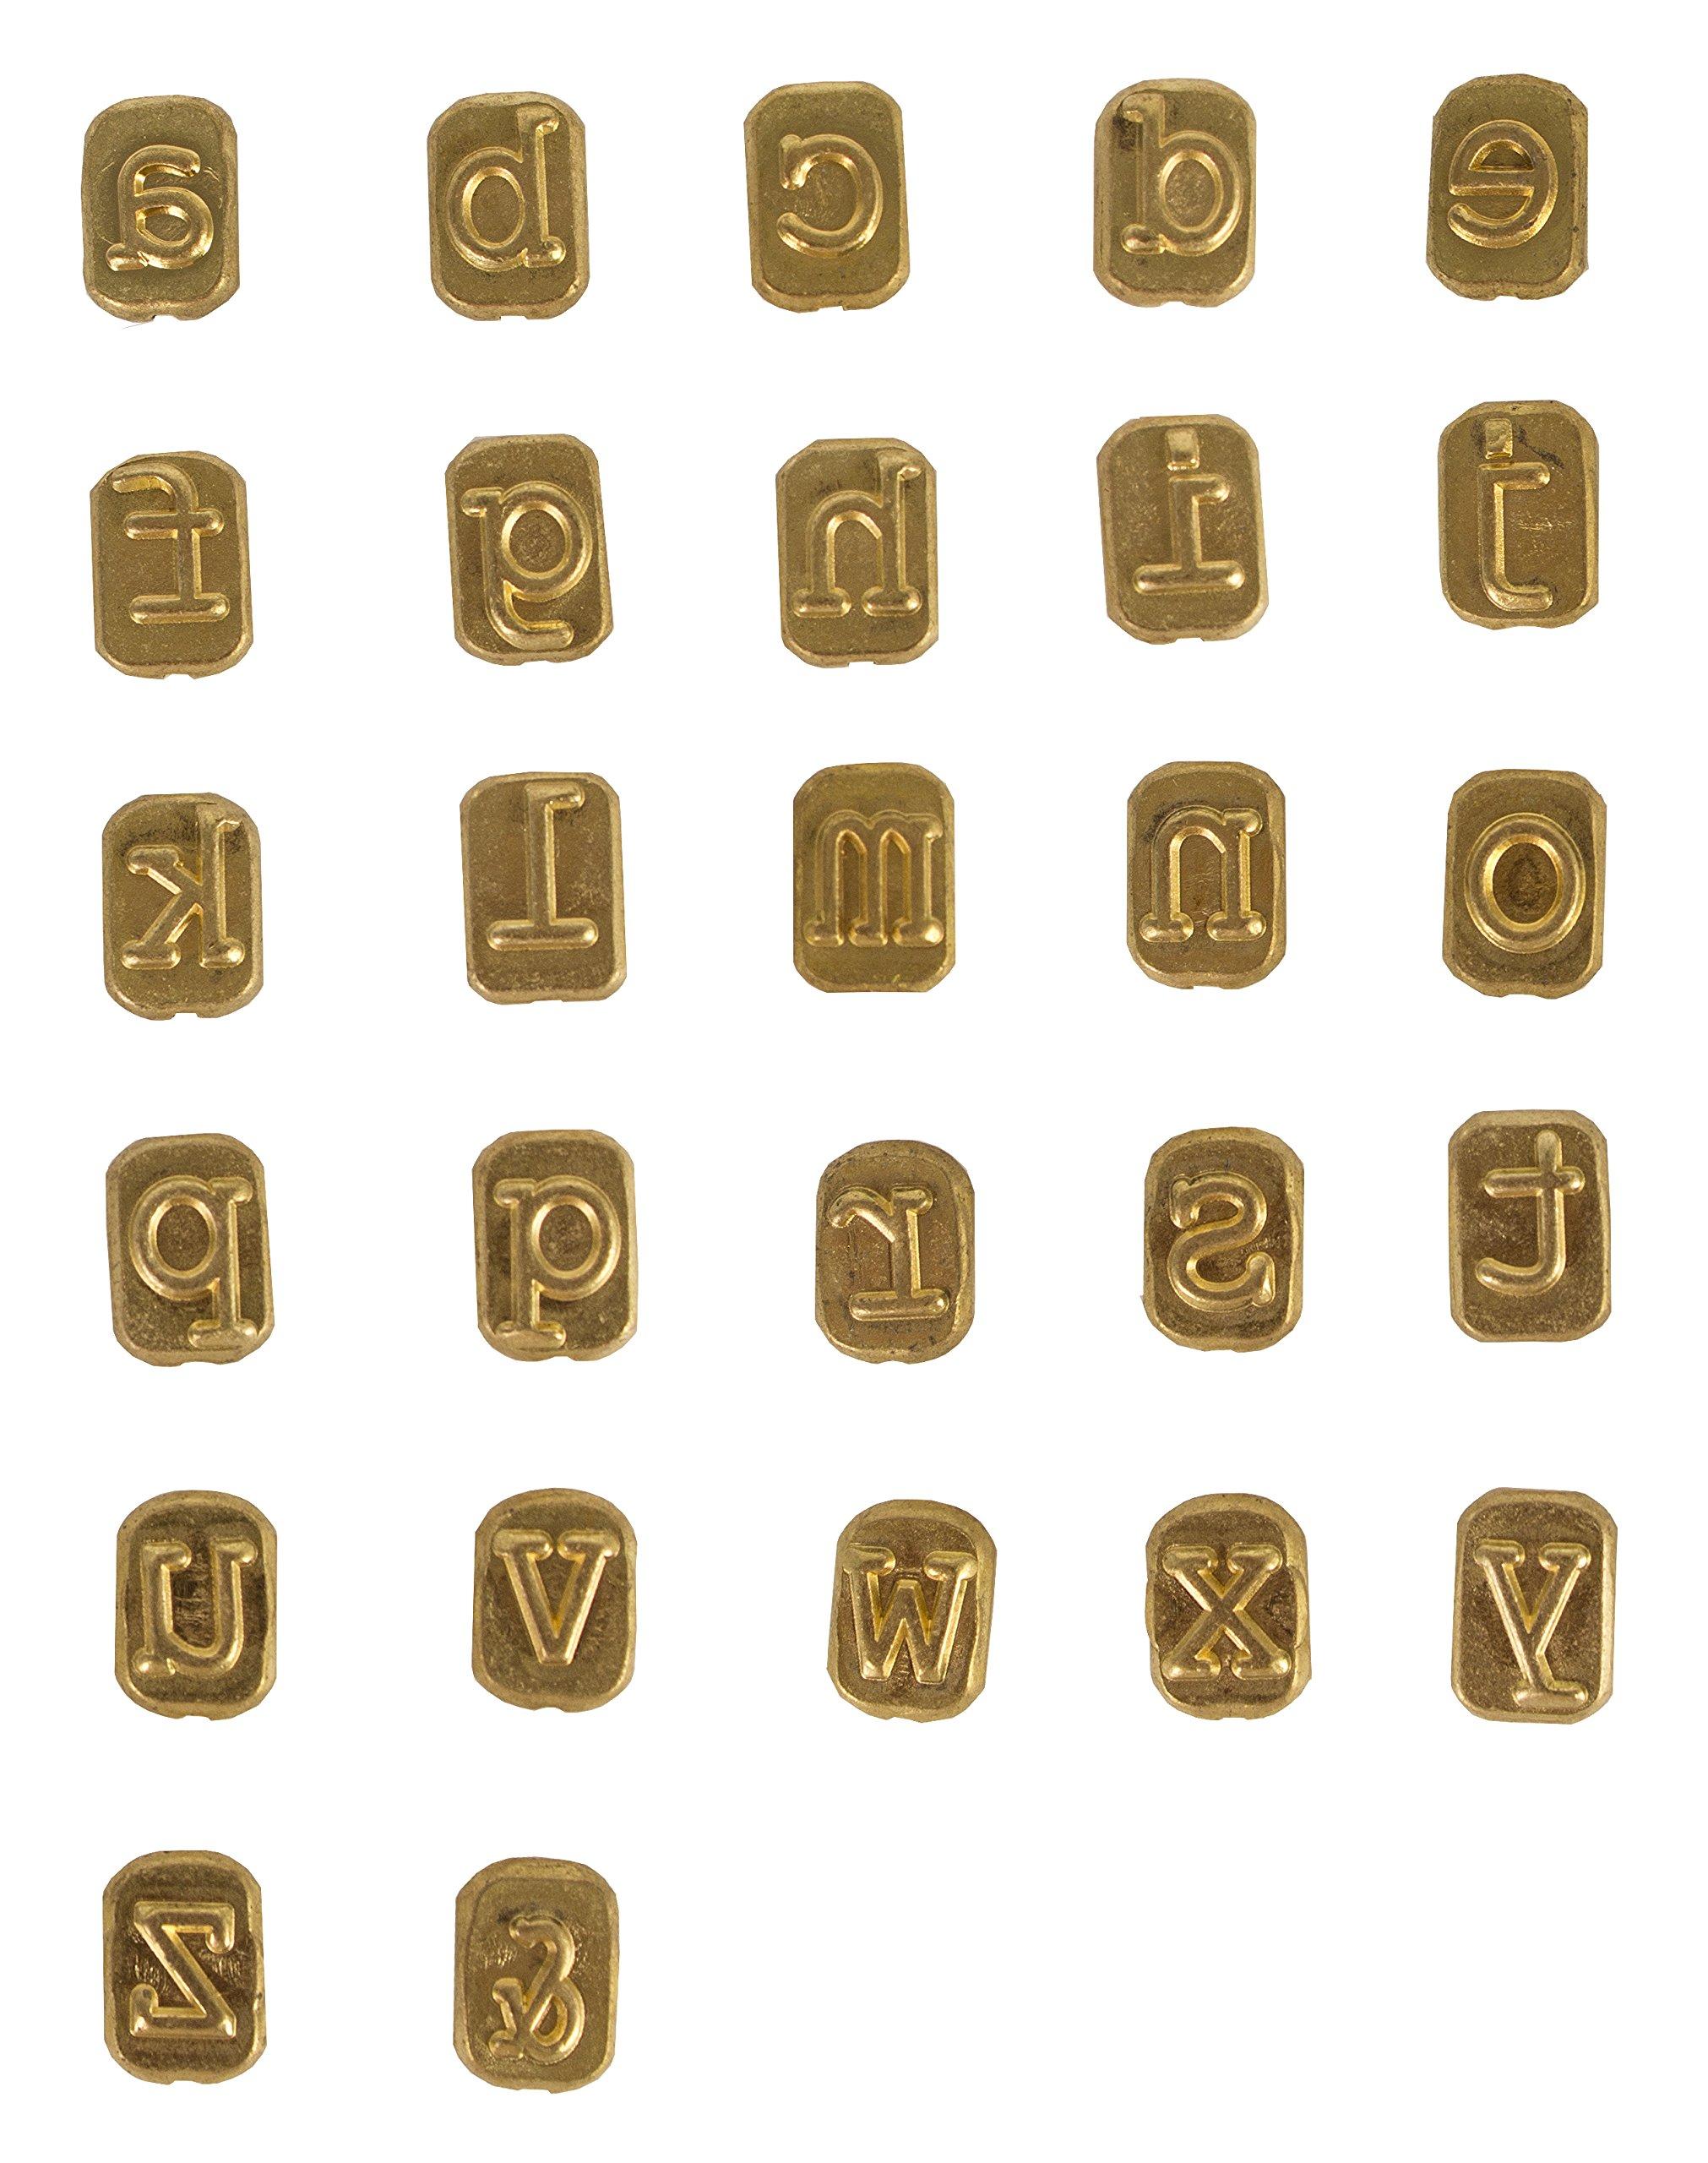 Walnut Hollow Mini Hotstamps Lowercase Alphabet Branding and Personalization Set for Wood, Leather and Other Surfaces